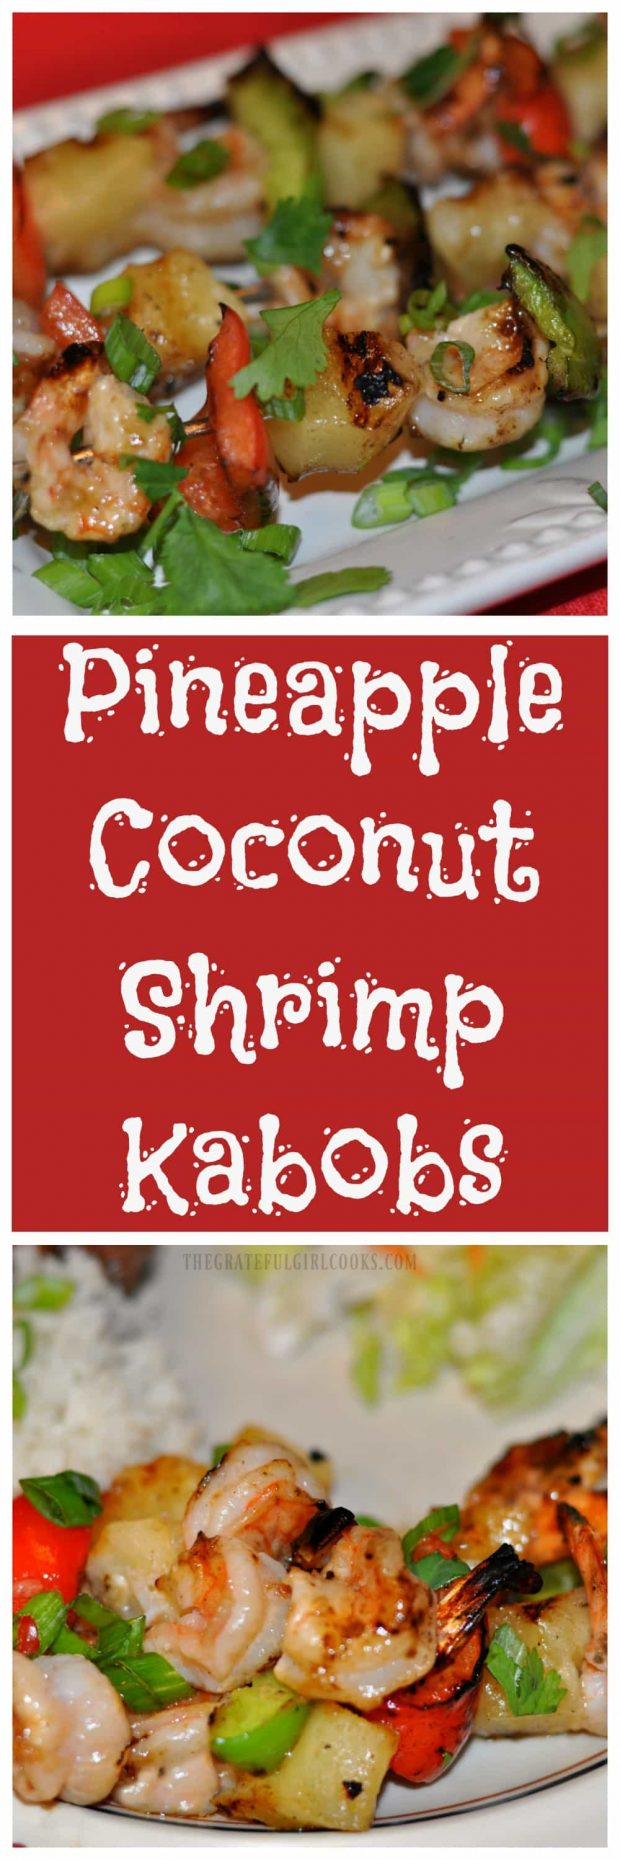 Long pin for Pineapple Coconut Shrimp Kabobs